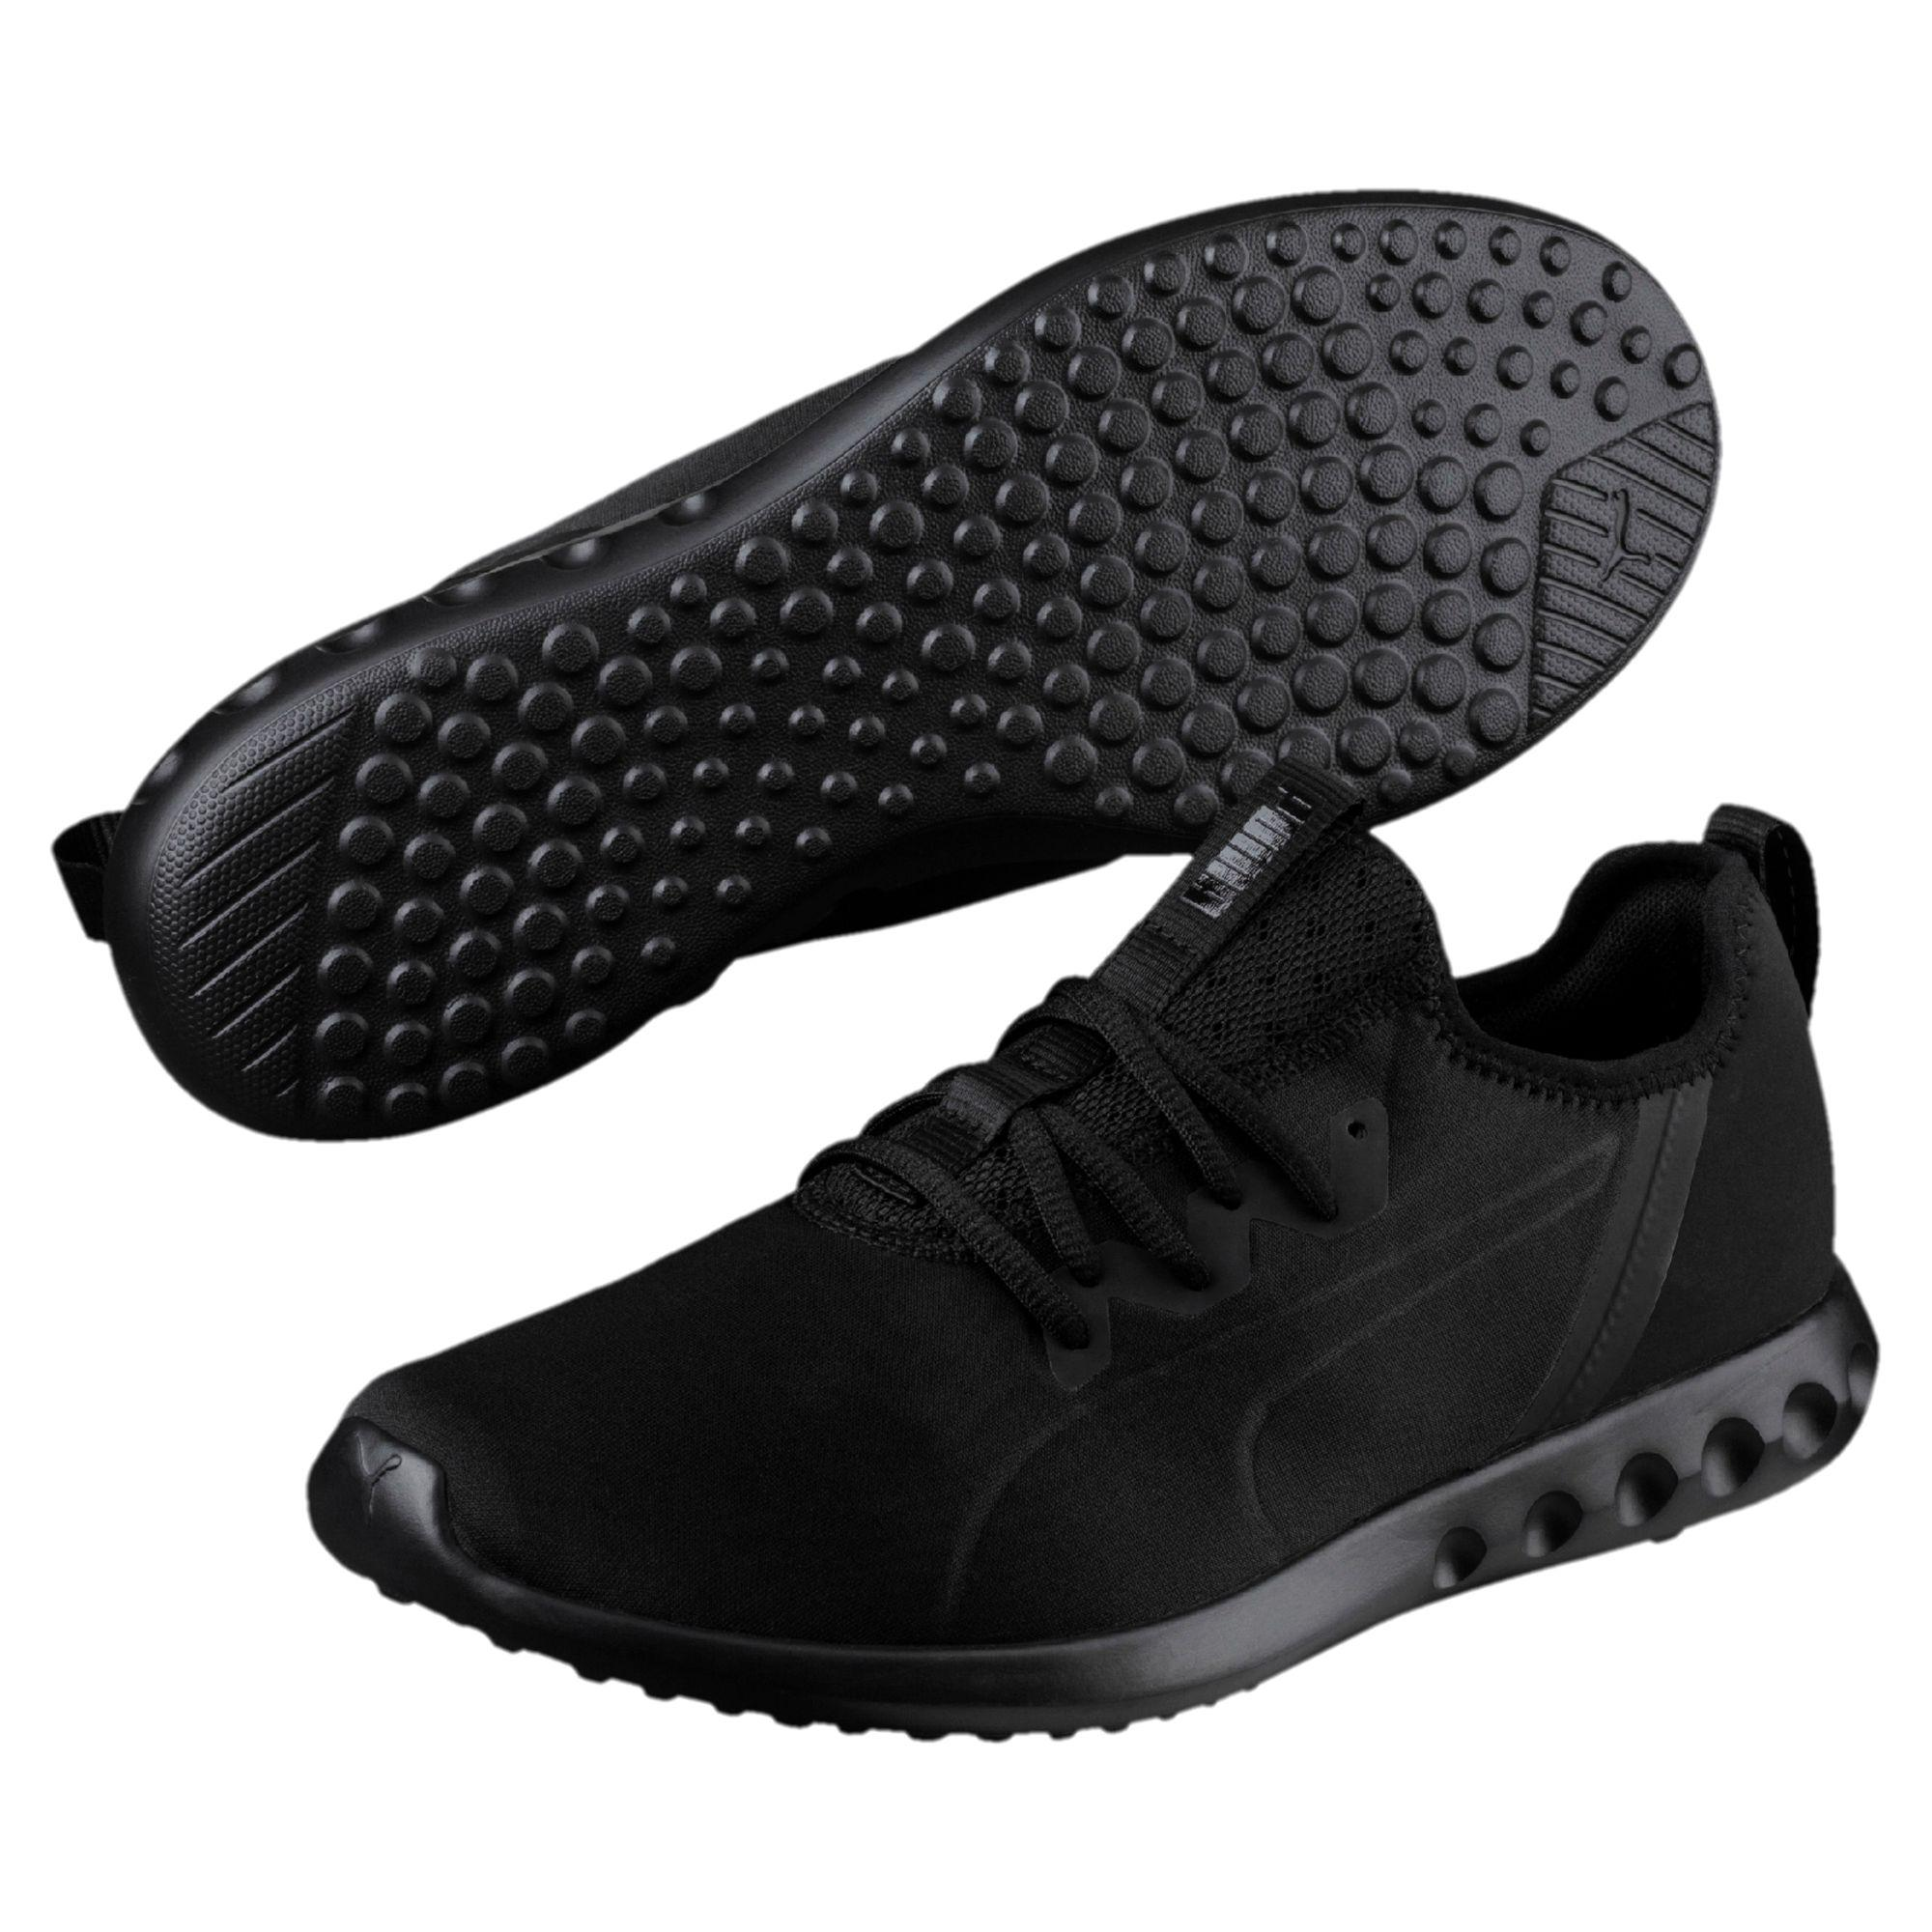 b6707dae9ad257 Lyst - PUMA Carson 2 X Men s Running Shoes in Black for Men